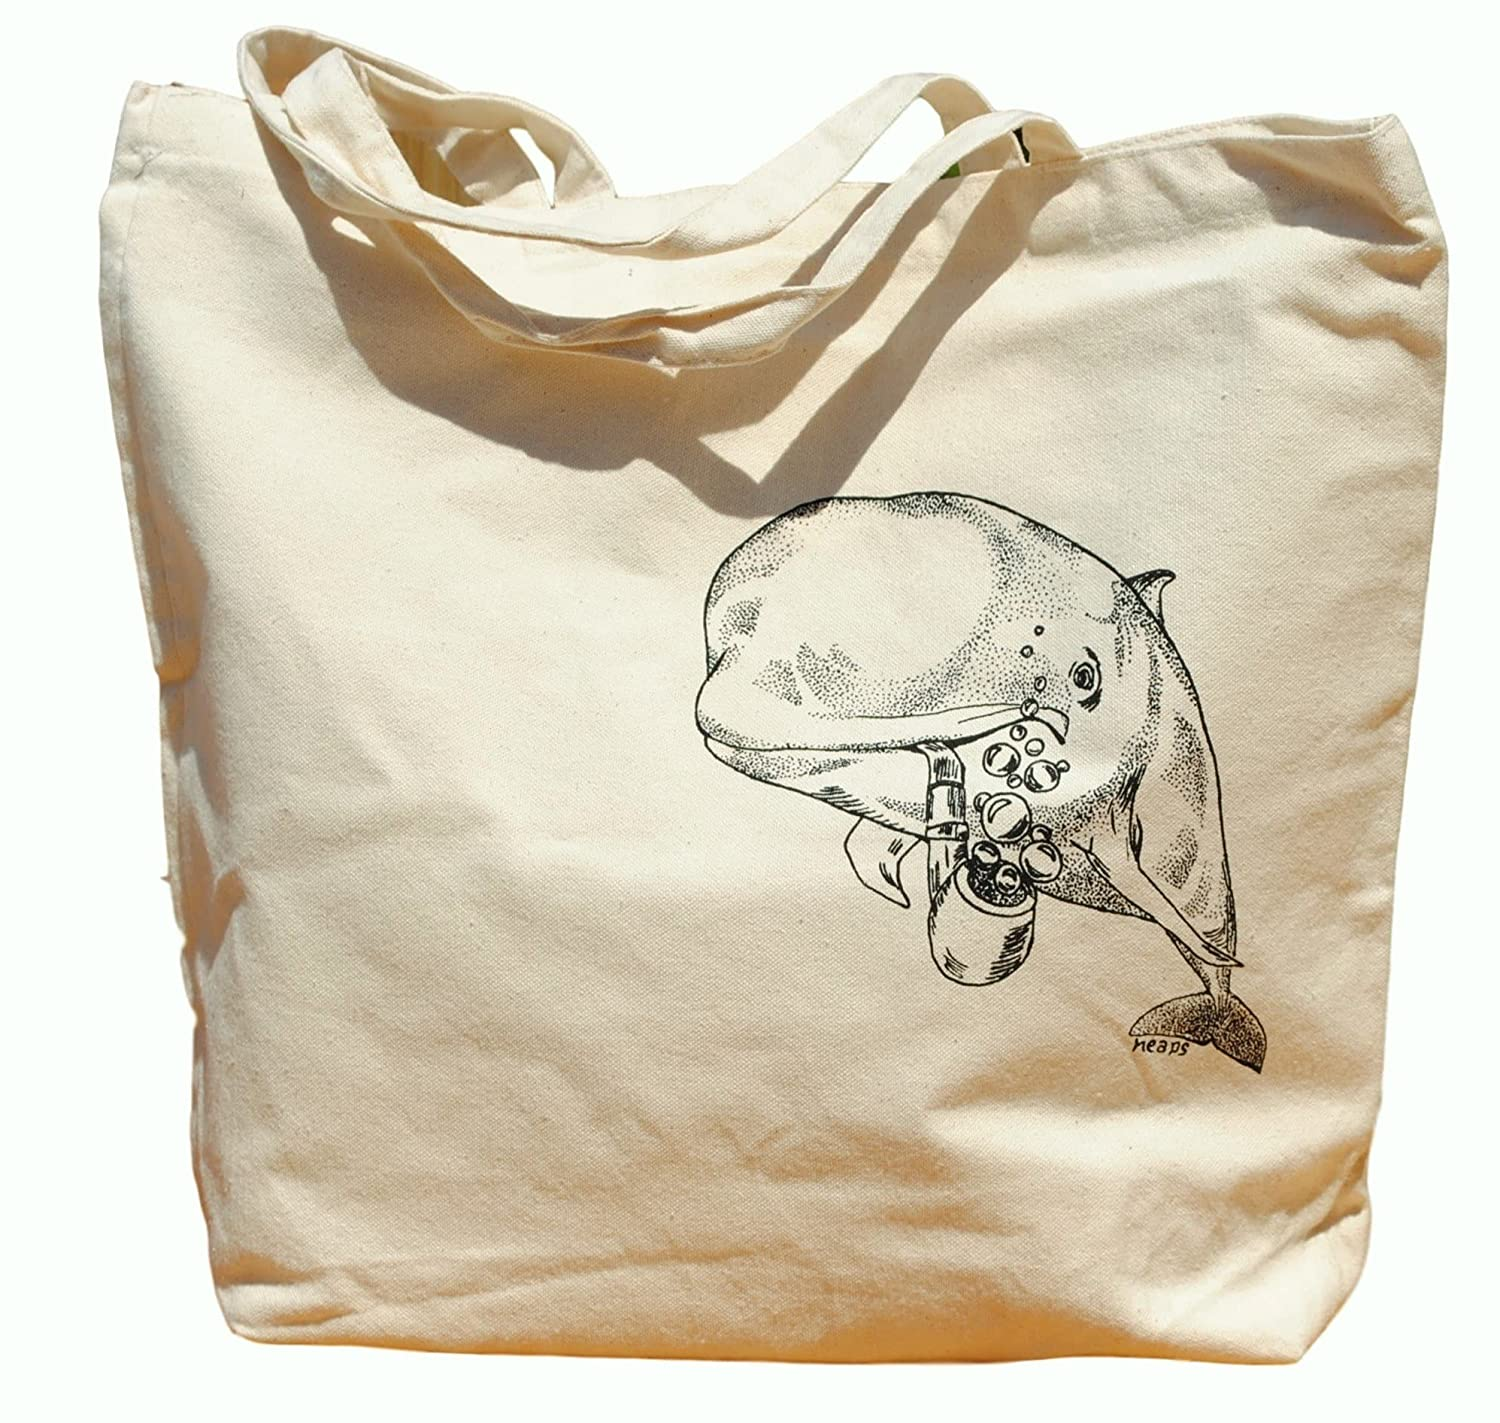 Canvas Tote Bag - Hand Printed Whale with a Pipe - Market Travel Beach Shopper Grocery School